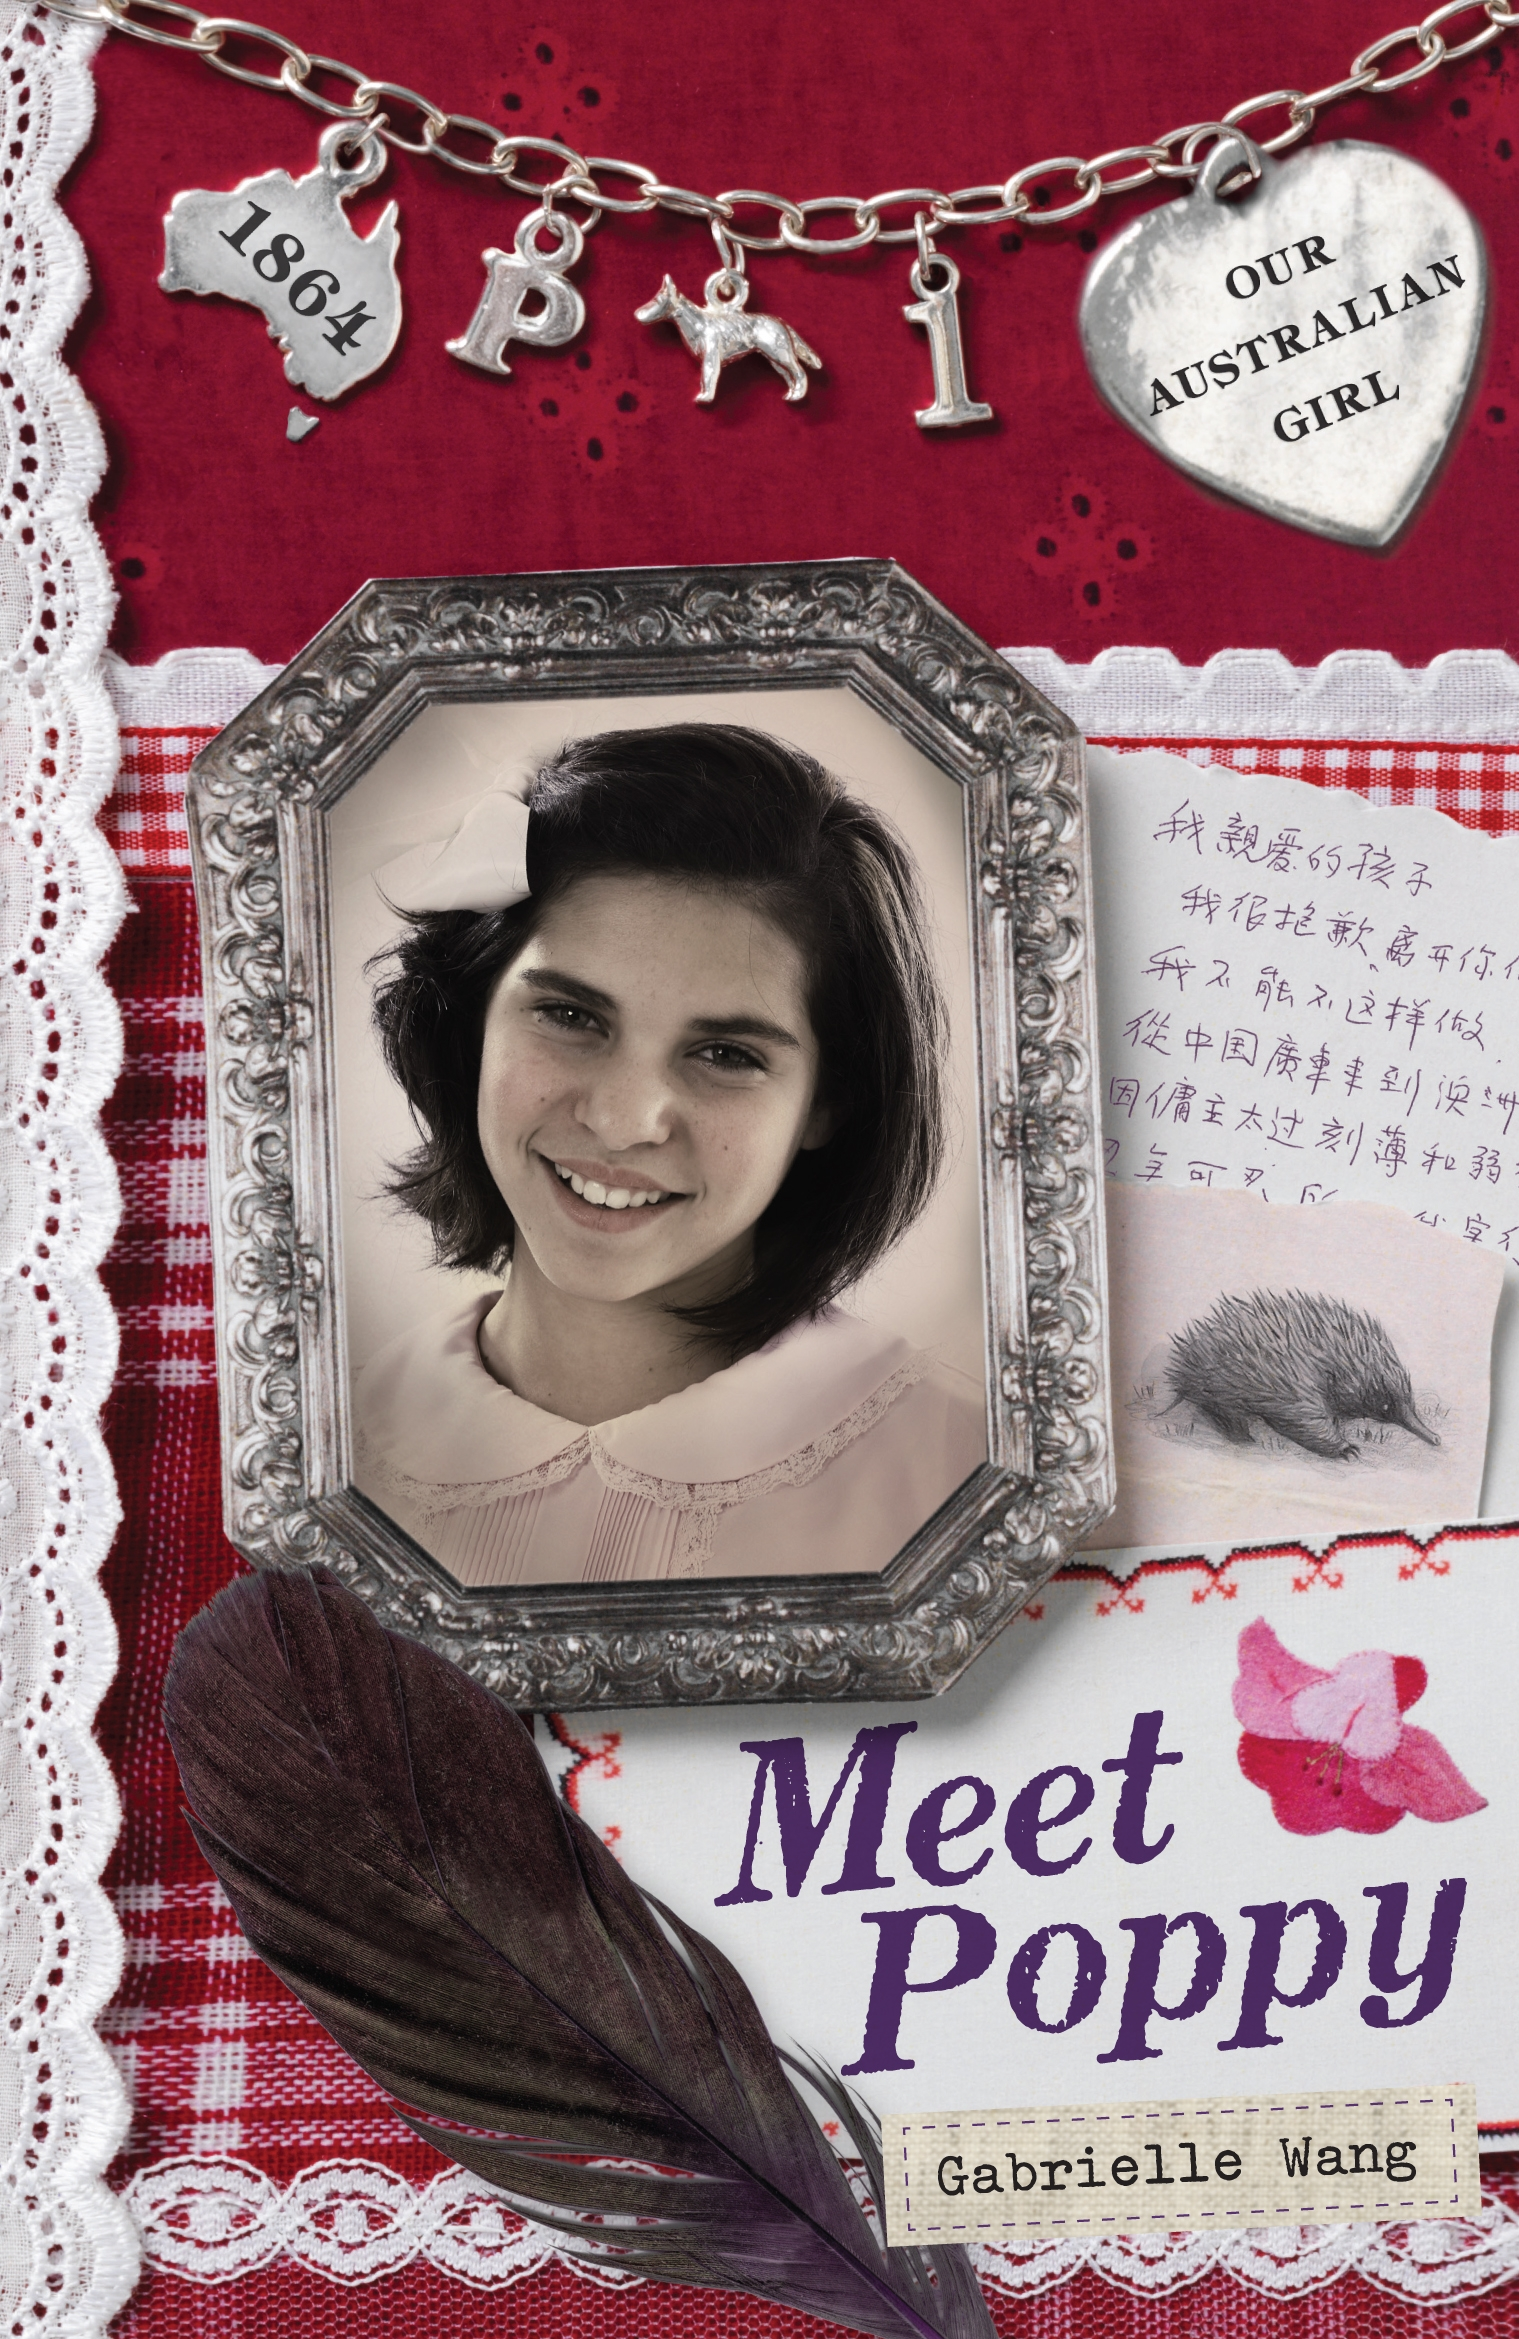 Book Cover:  Our Australian Girl: Meet Poppy (Book 1)